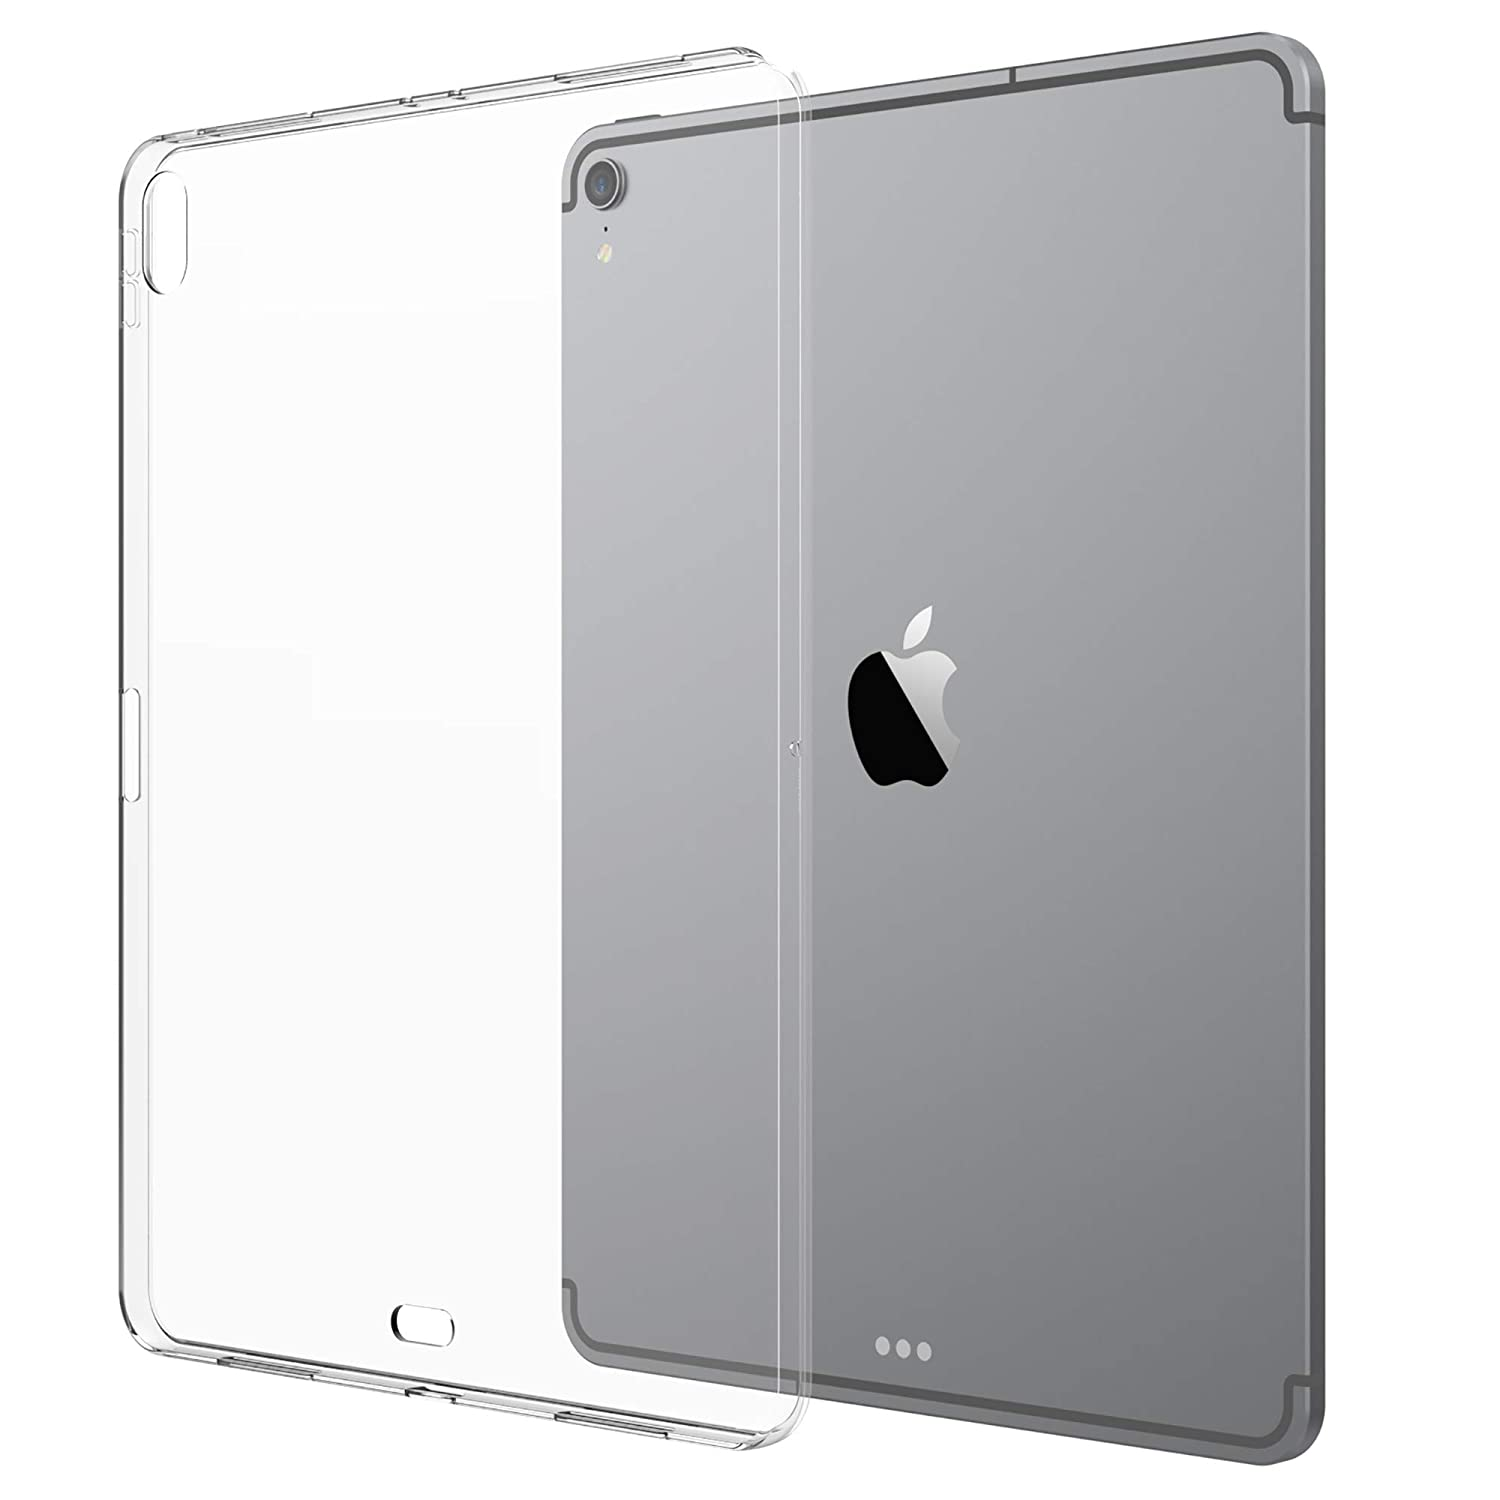 buy online 925b8 5a169 Luvvitt iPad Pro 11 Case Clarity Flexible TPU Slim and Light Back Cover for  Apple iPad Pro 11 in 2018 - Clear (Updated Version - Camera Cutout and ...